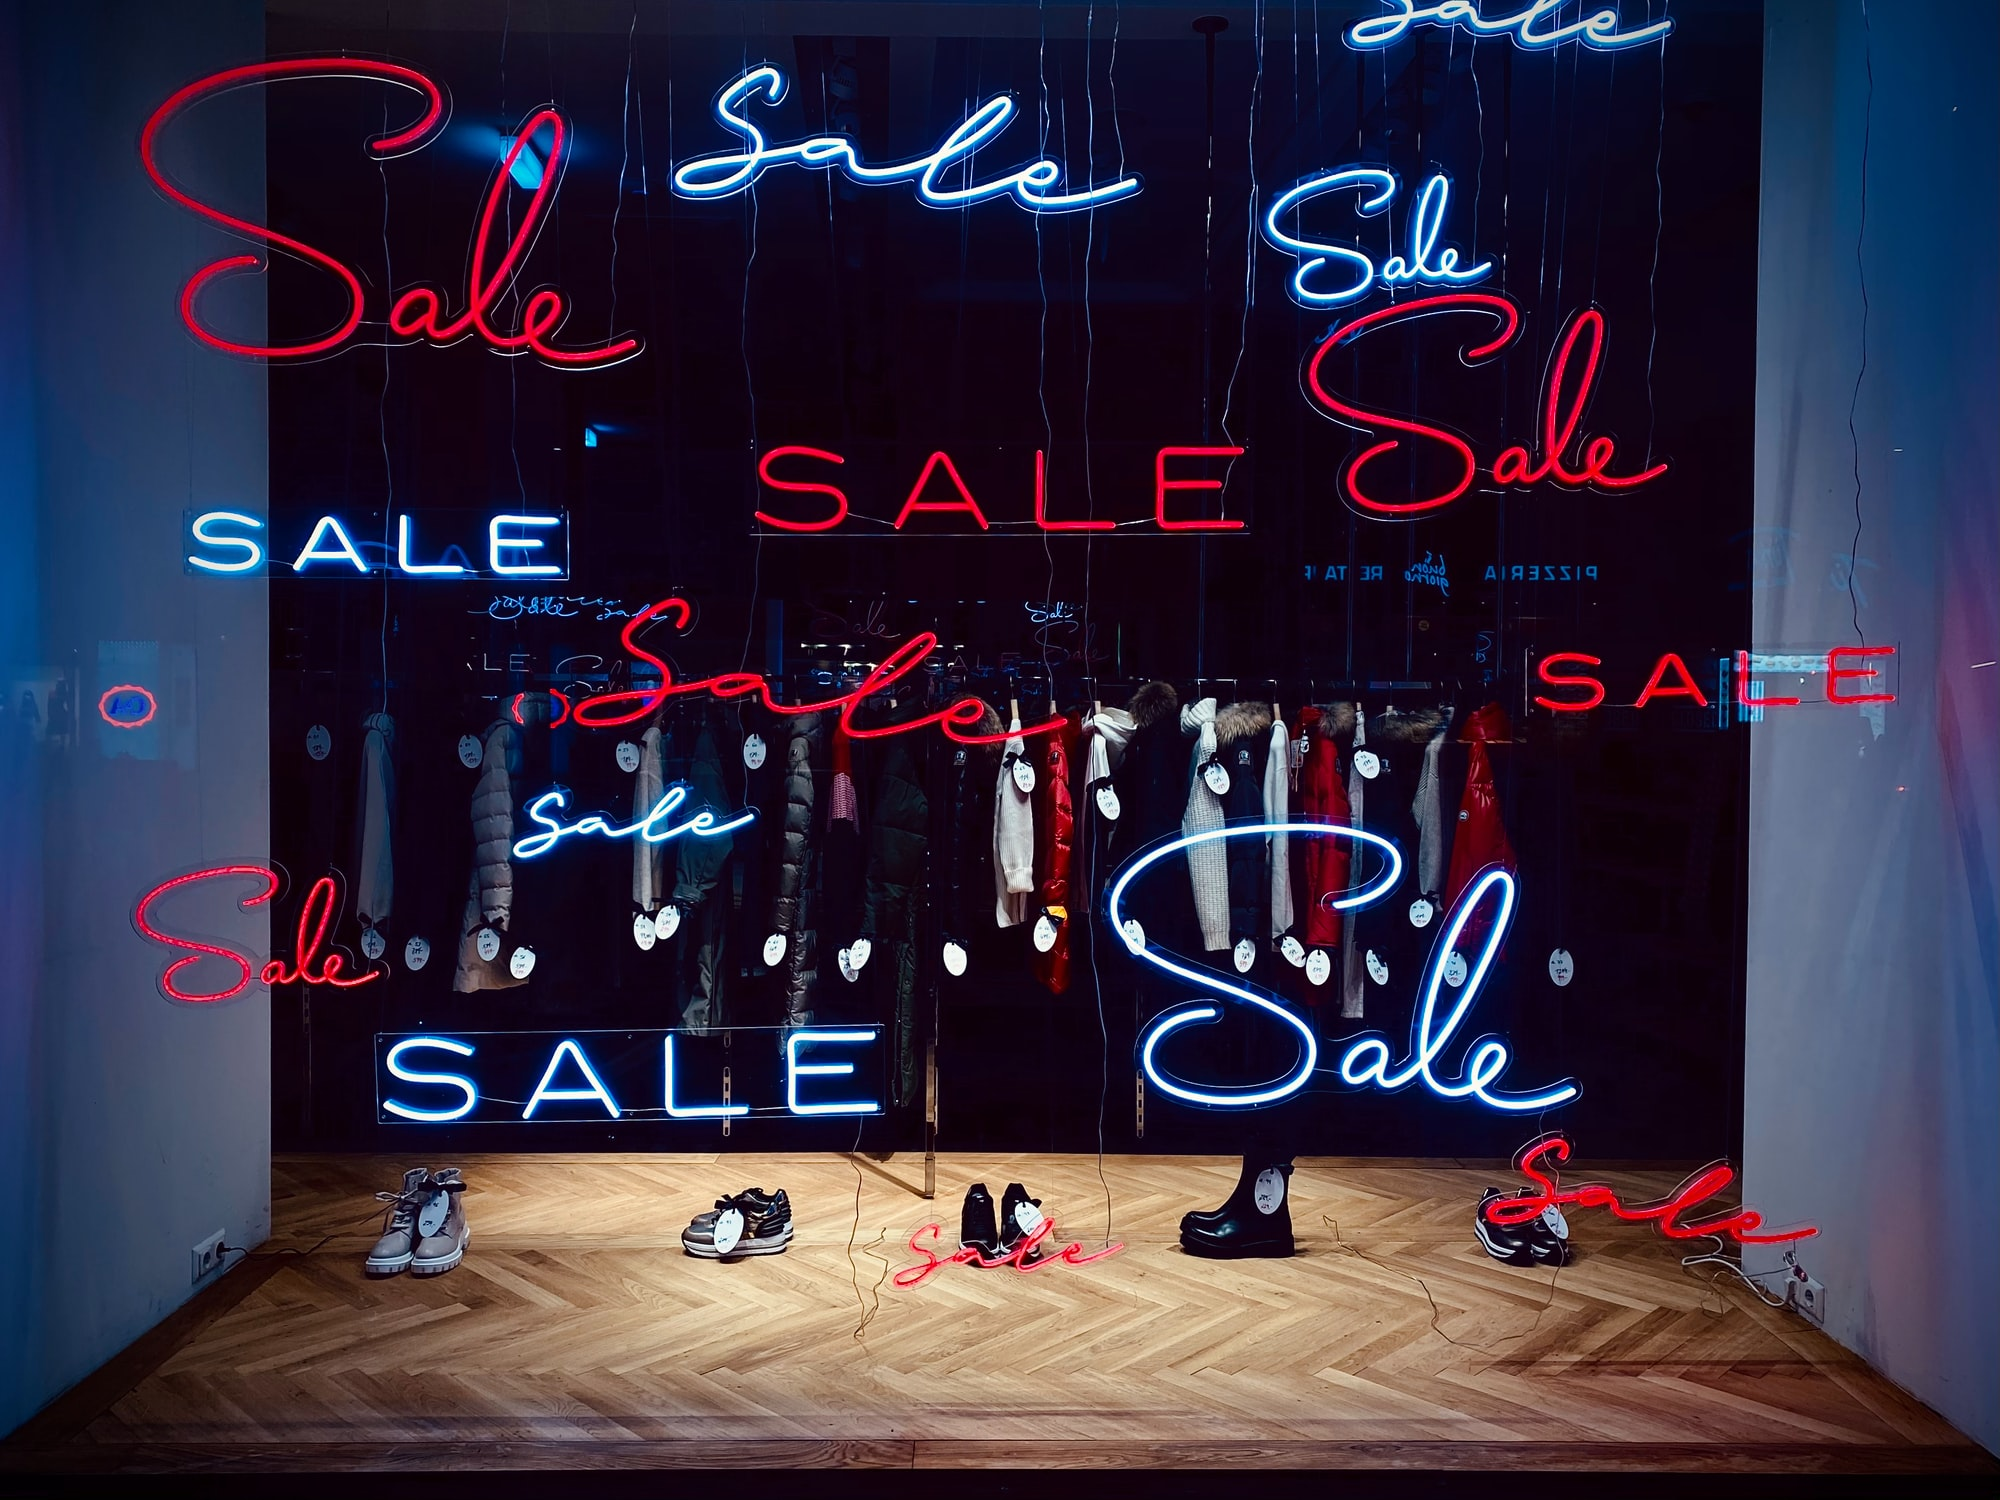 Sale Sale Sale, Kudos to the decoration artist at Hämmerle, Vienna, great piece of excellent work there!